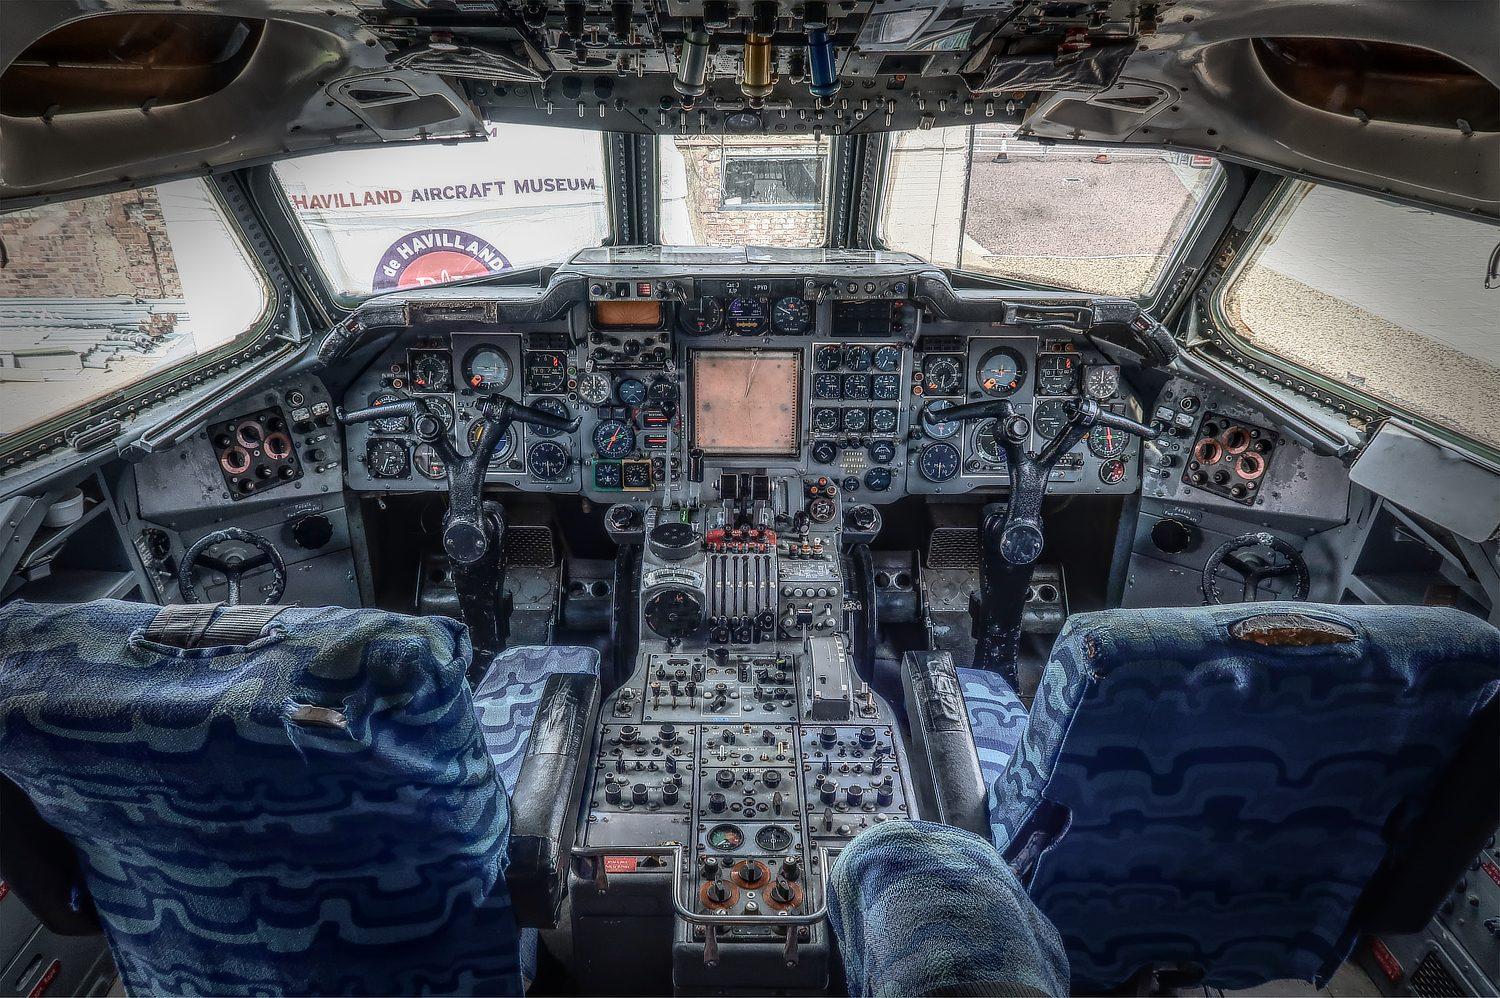 Hawker Siddeley Trident flight deck photo